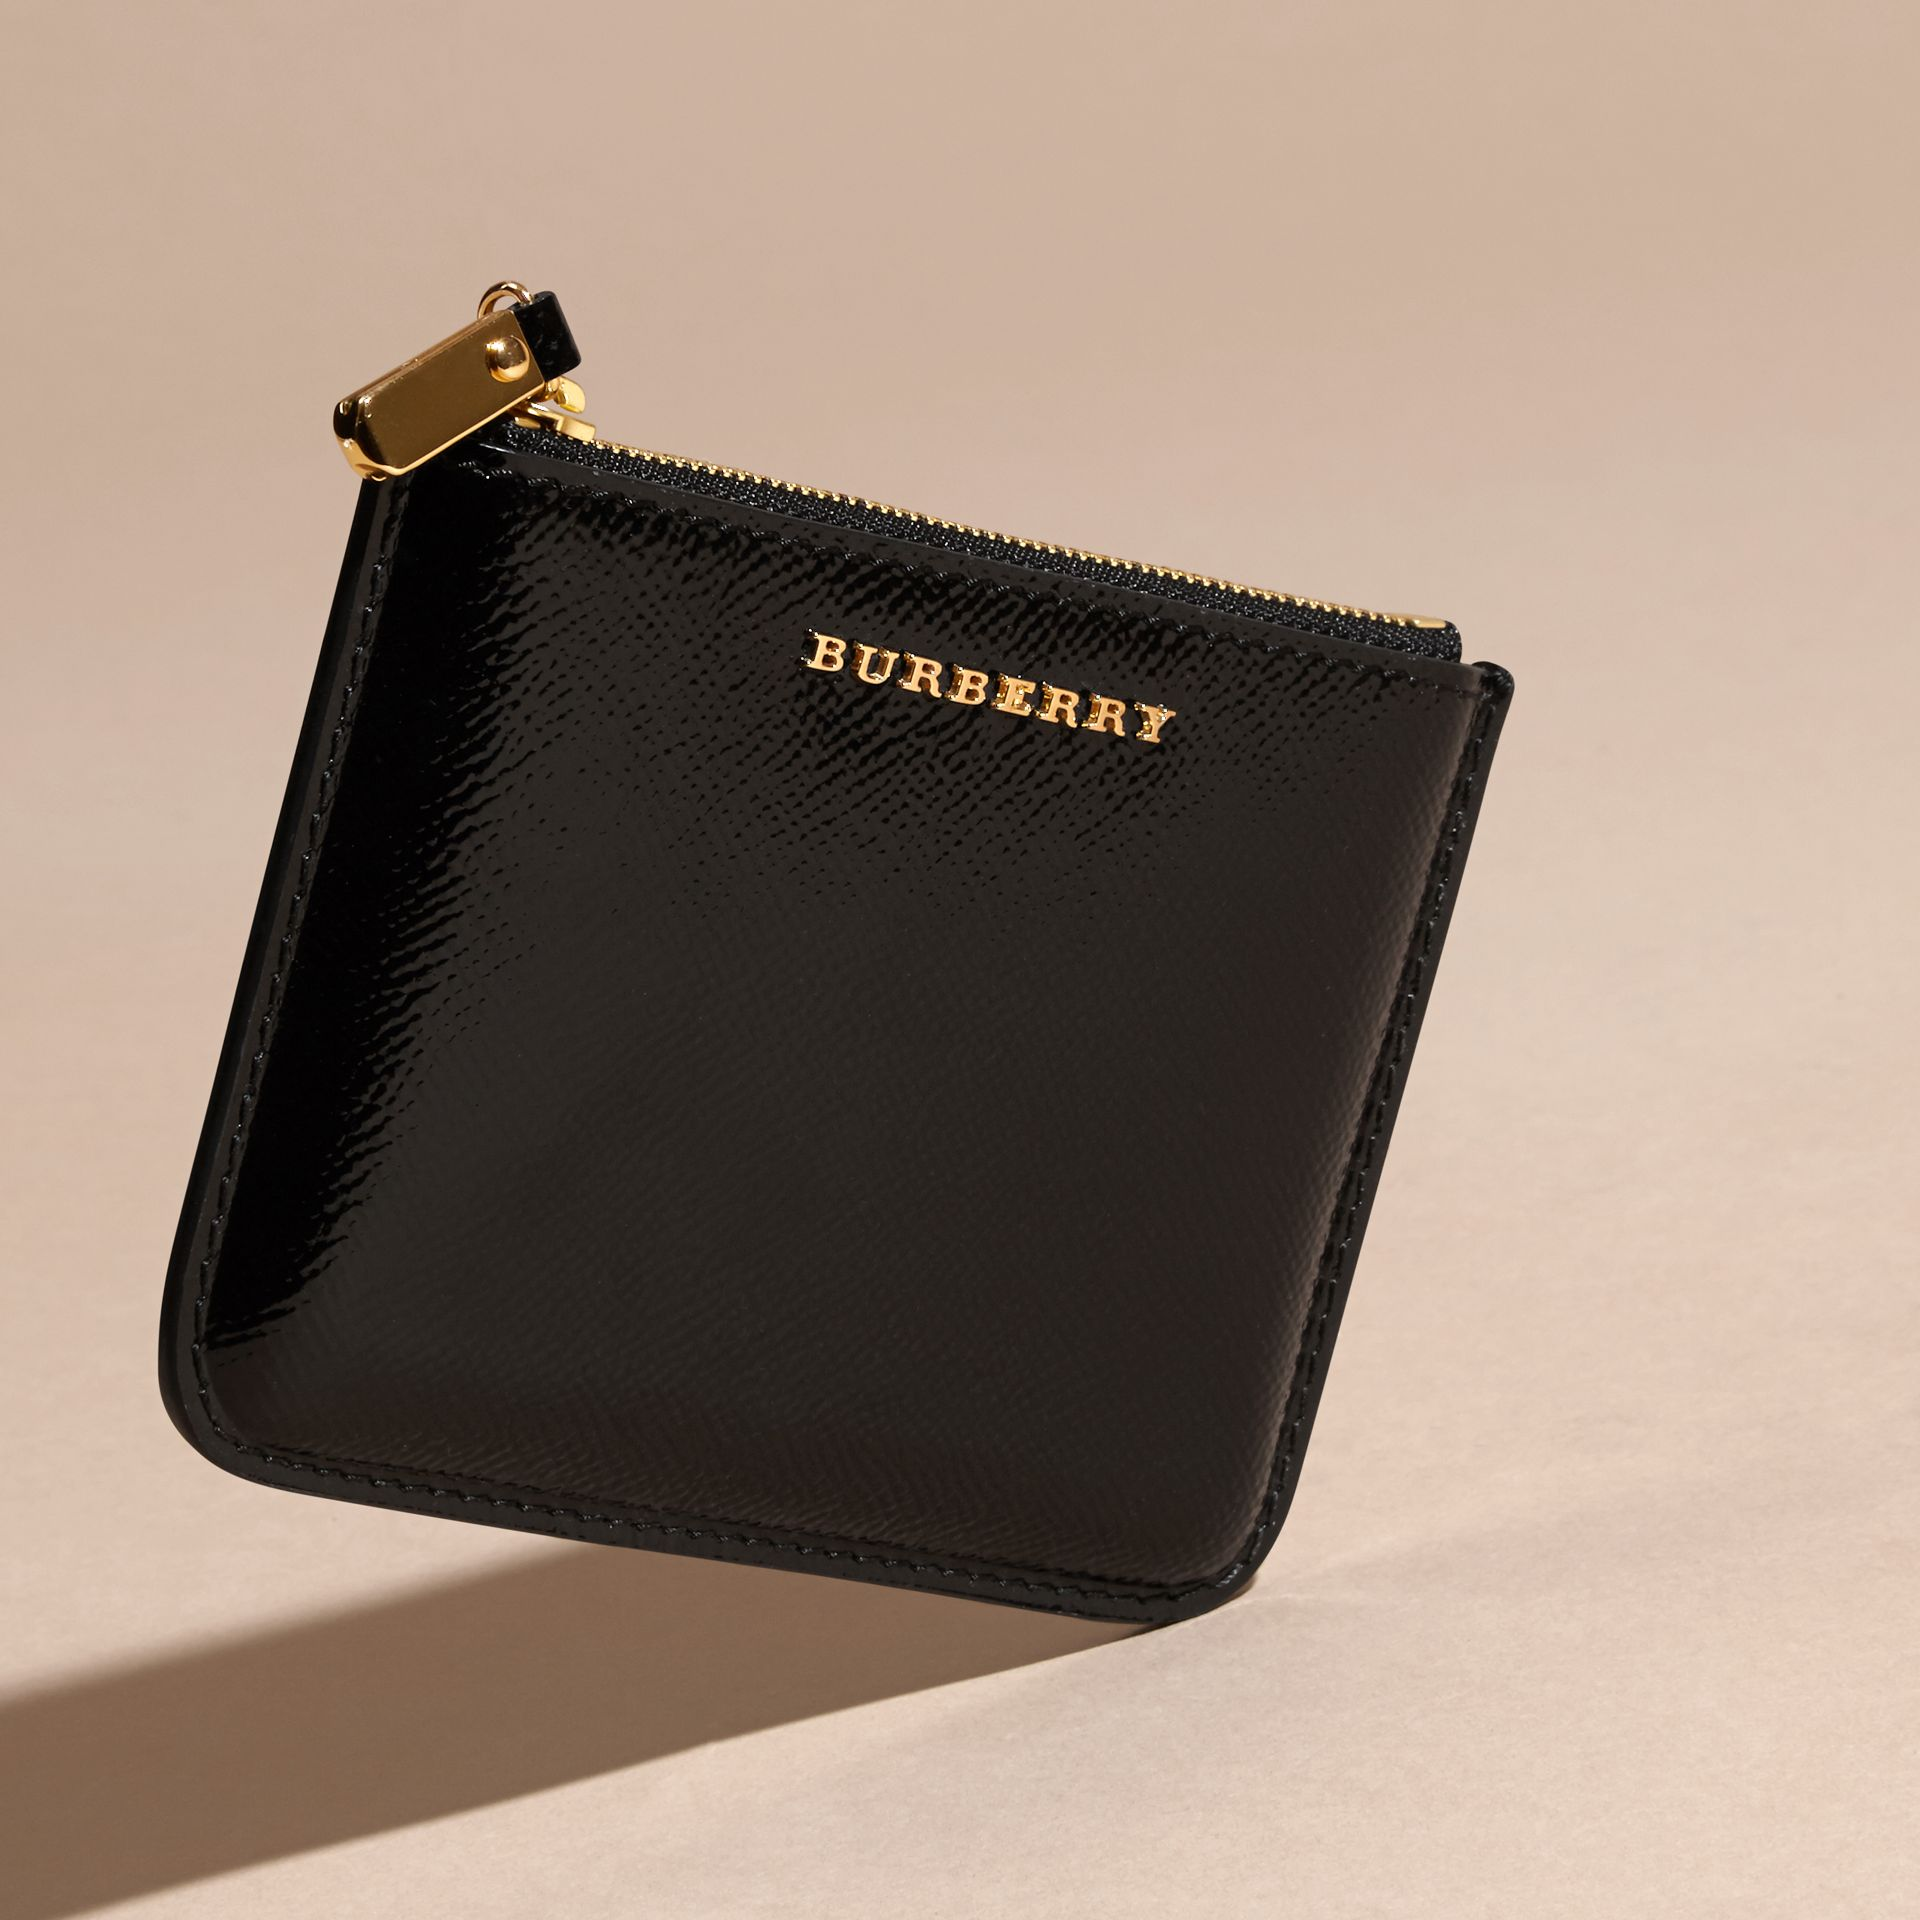 Pochette en cuir London verni - Femme | Burberry - photo de la galerie 3